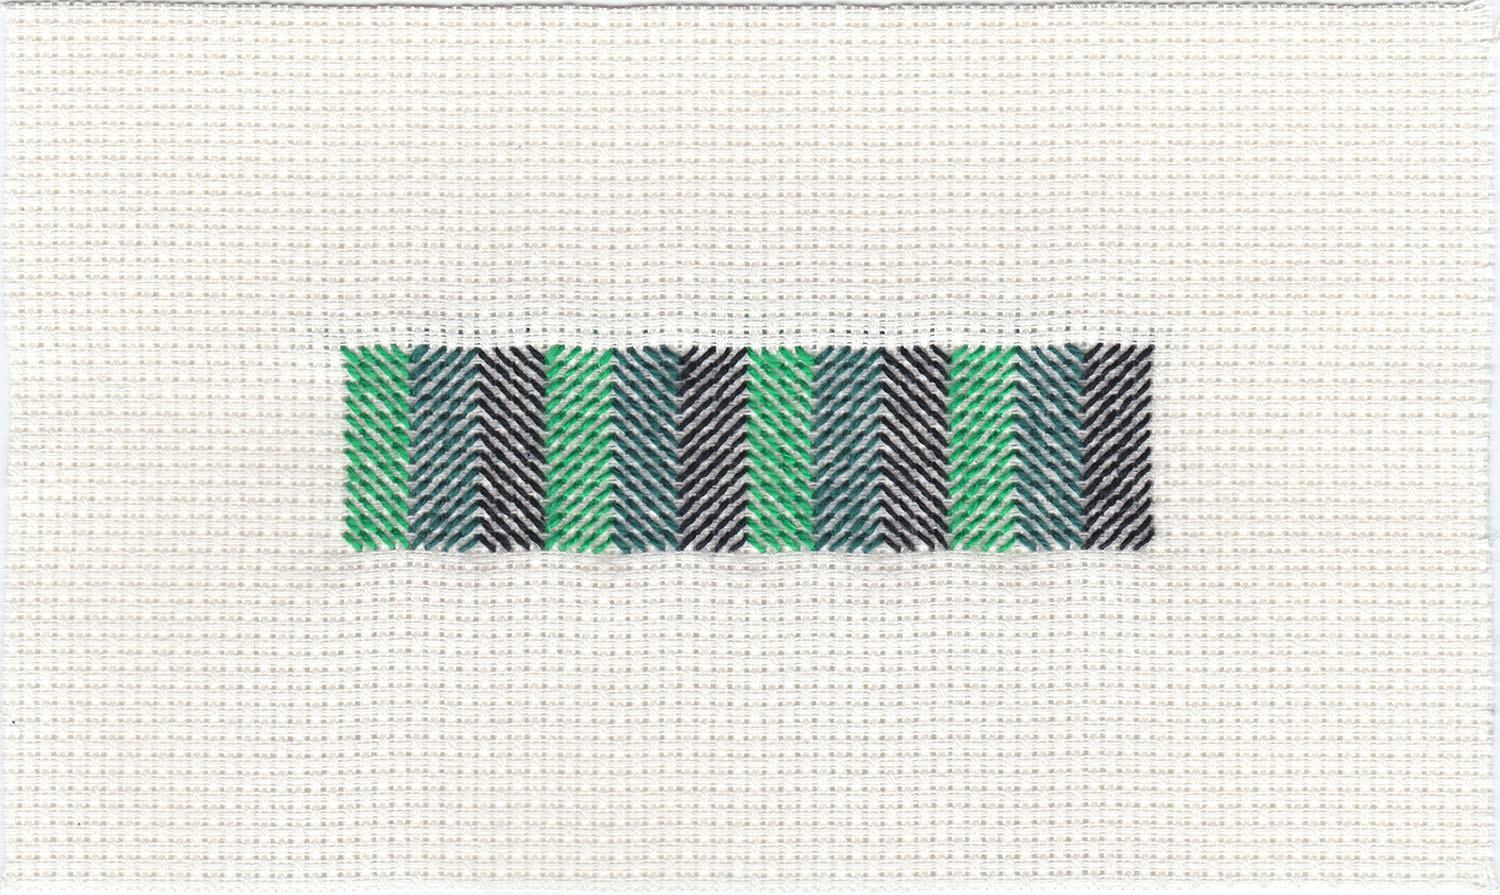 Colour Study in 576 Diagonal Stitches_9A_web.jpg